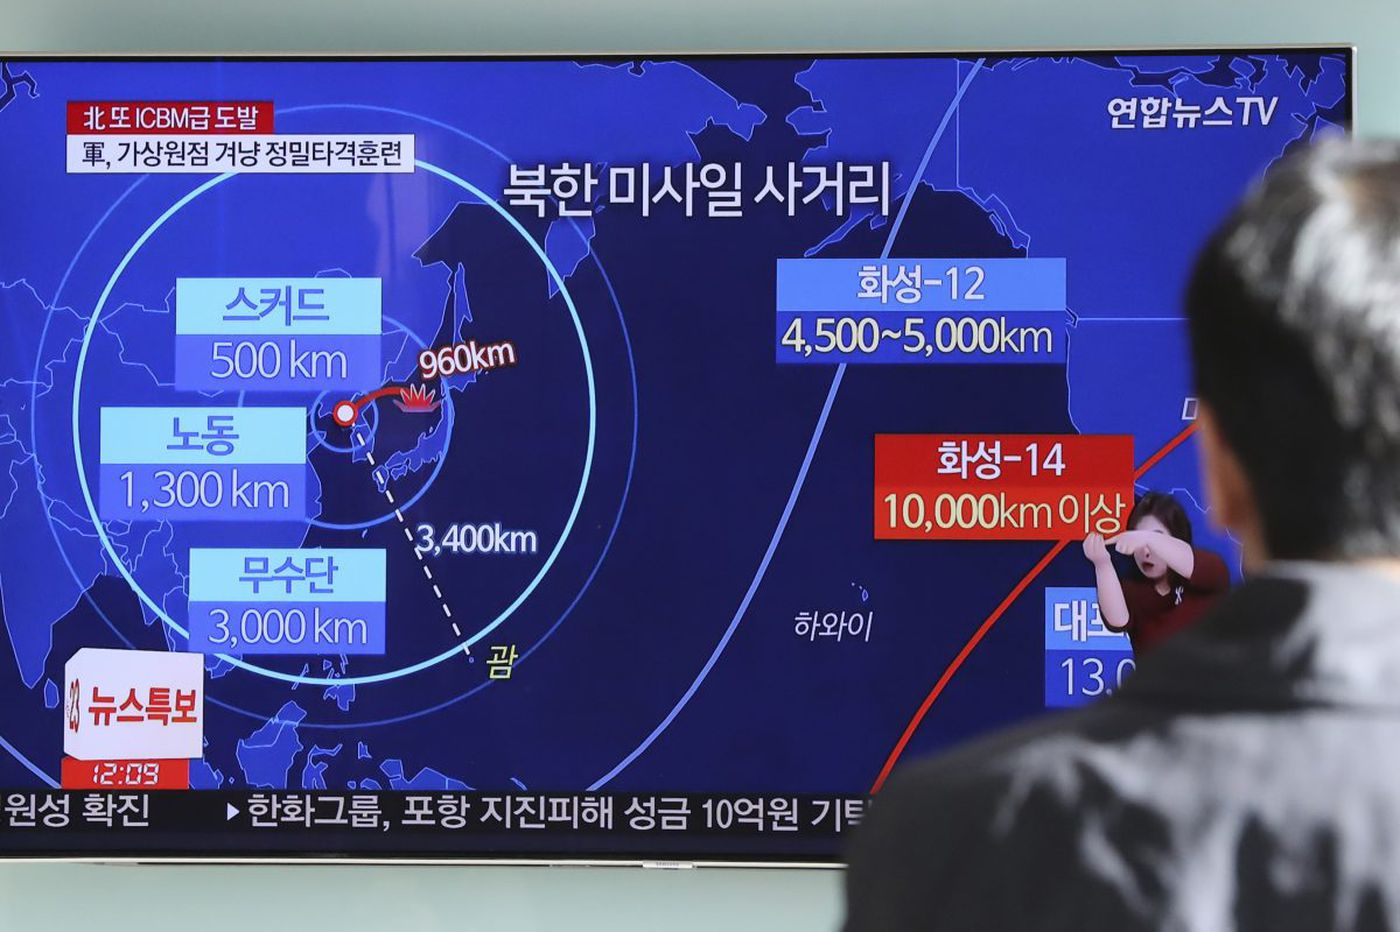 Considering just-war responses to N. Korea provocations